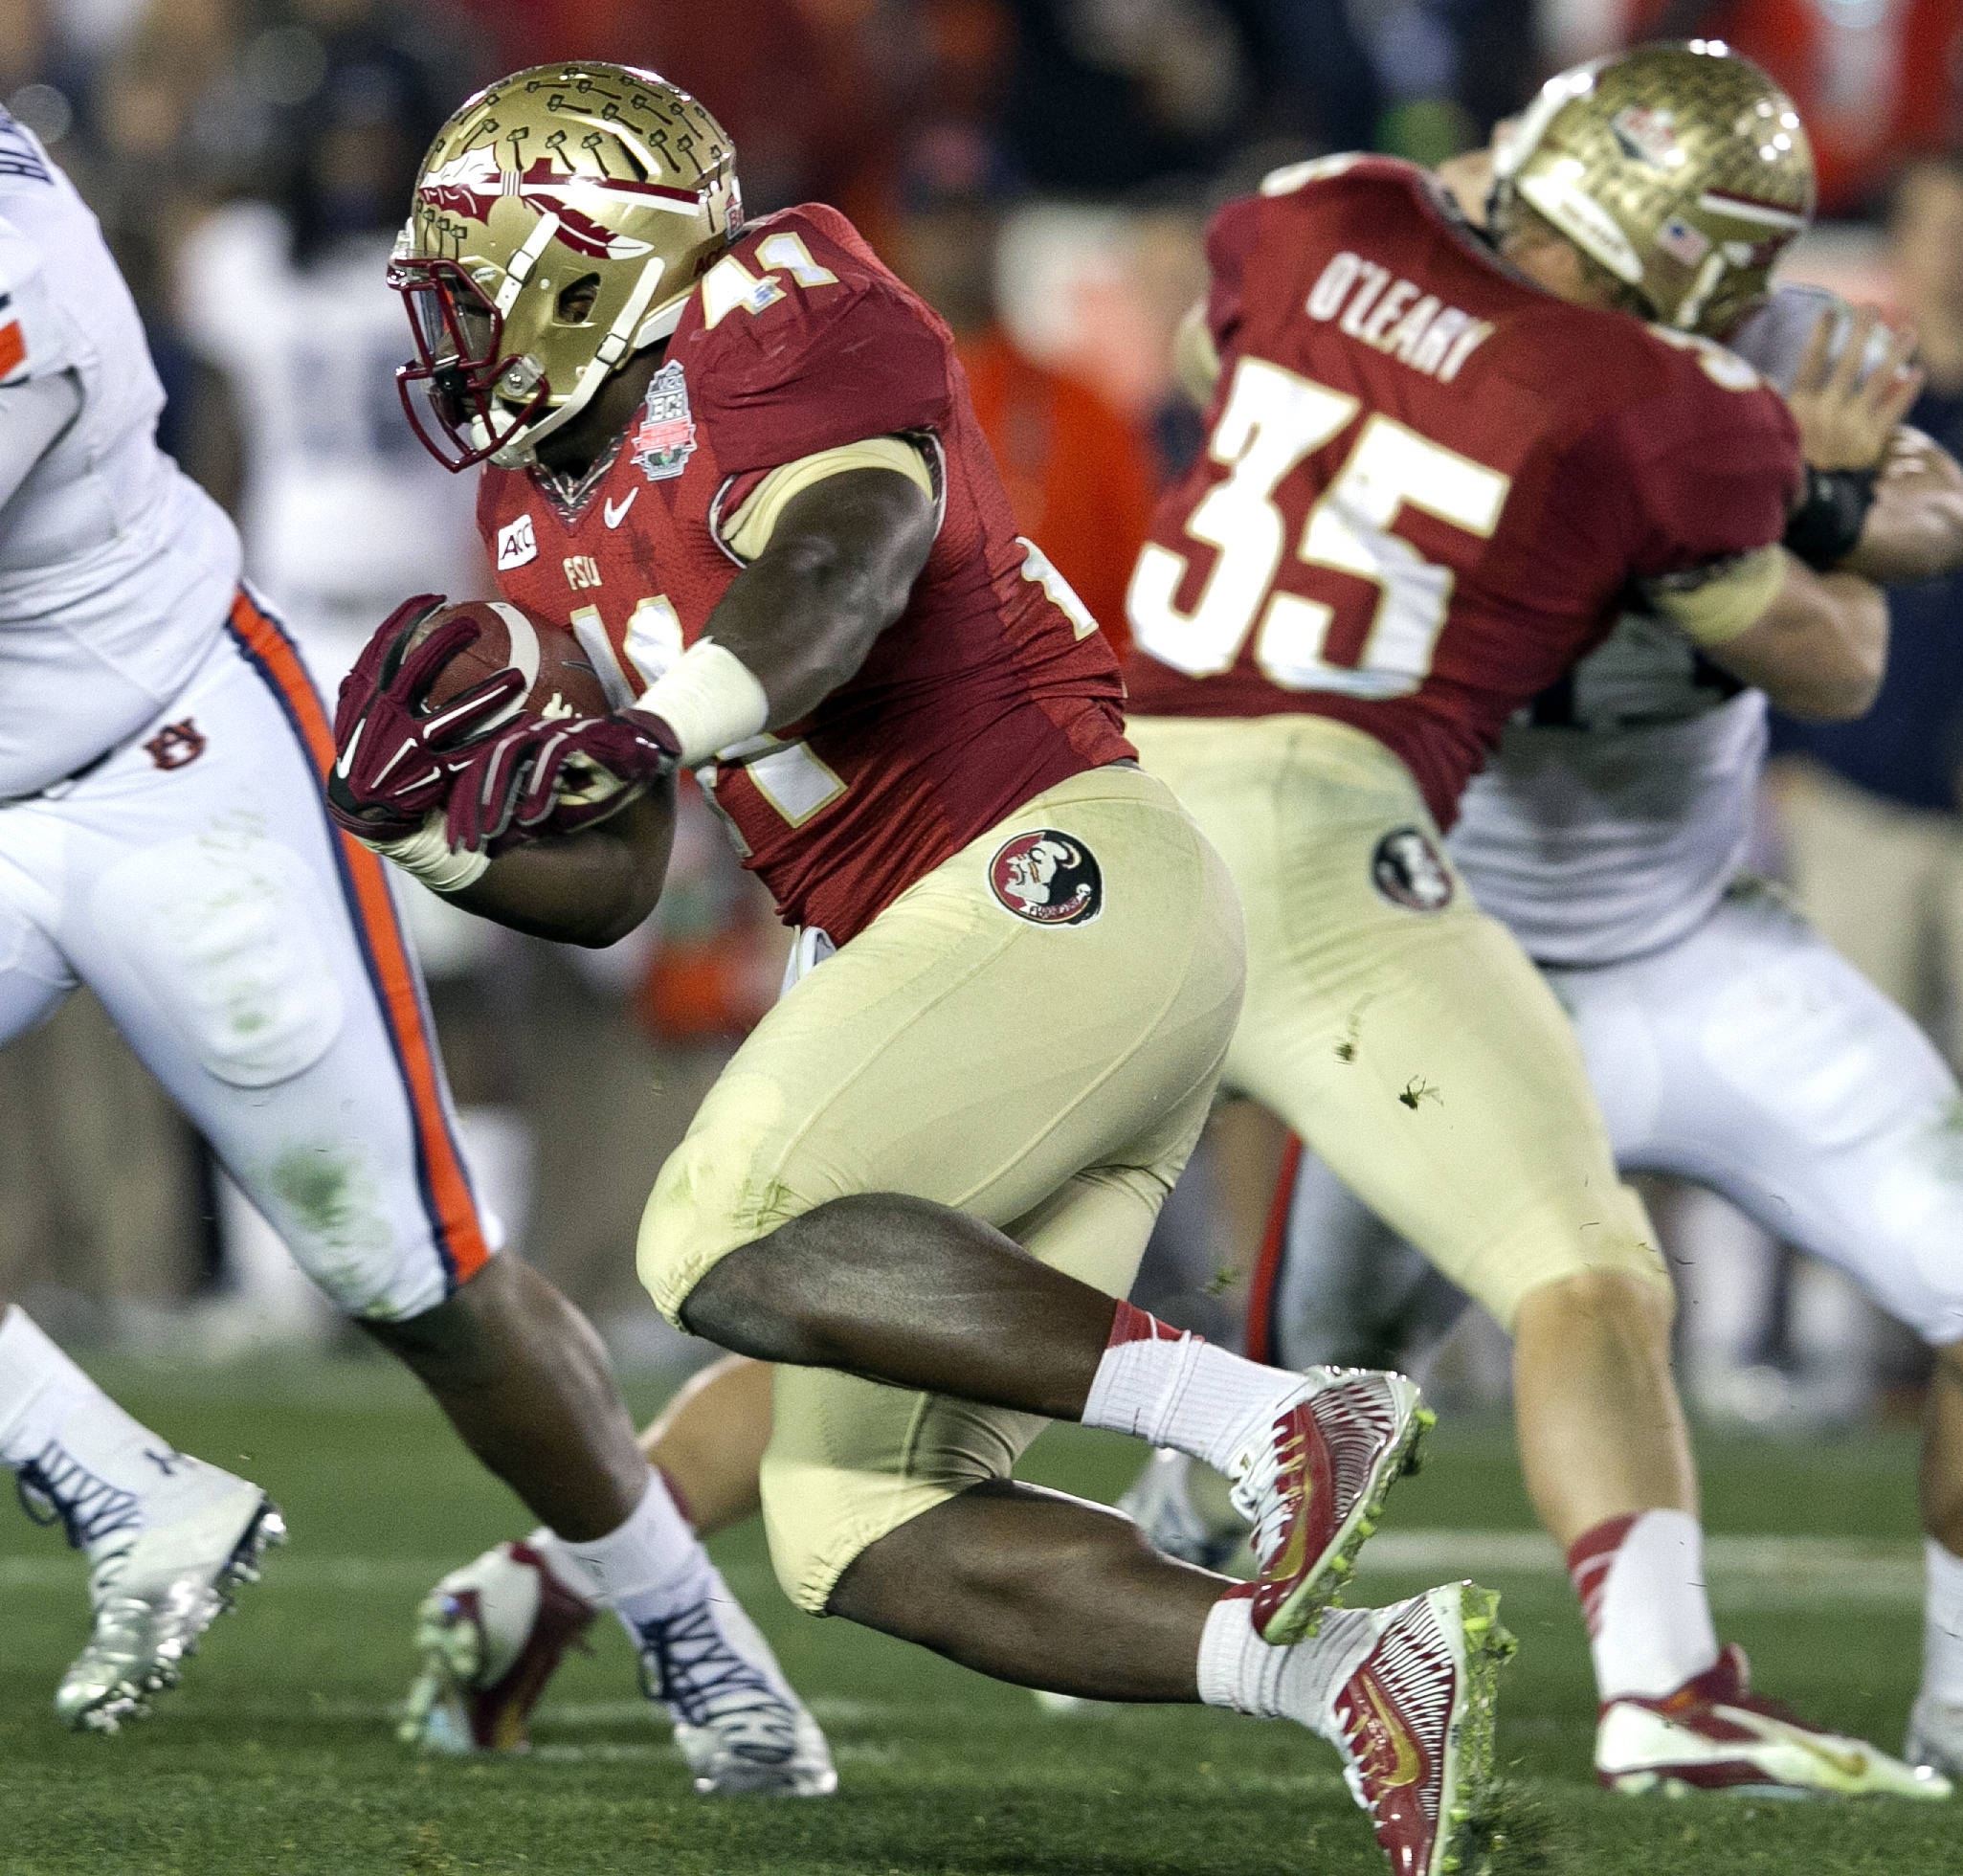 Chad Abram (41) on an end around, BCS Championship, FSU vs Auburn, Rose Bowl, Pasadena, CA,  1-06-14,  (Photo by Steve Musco)